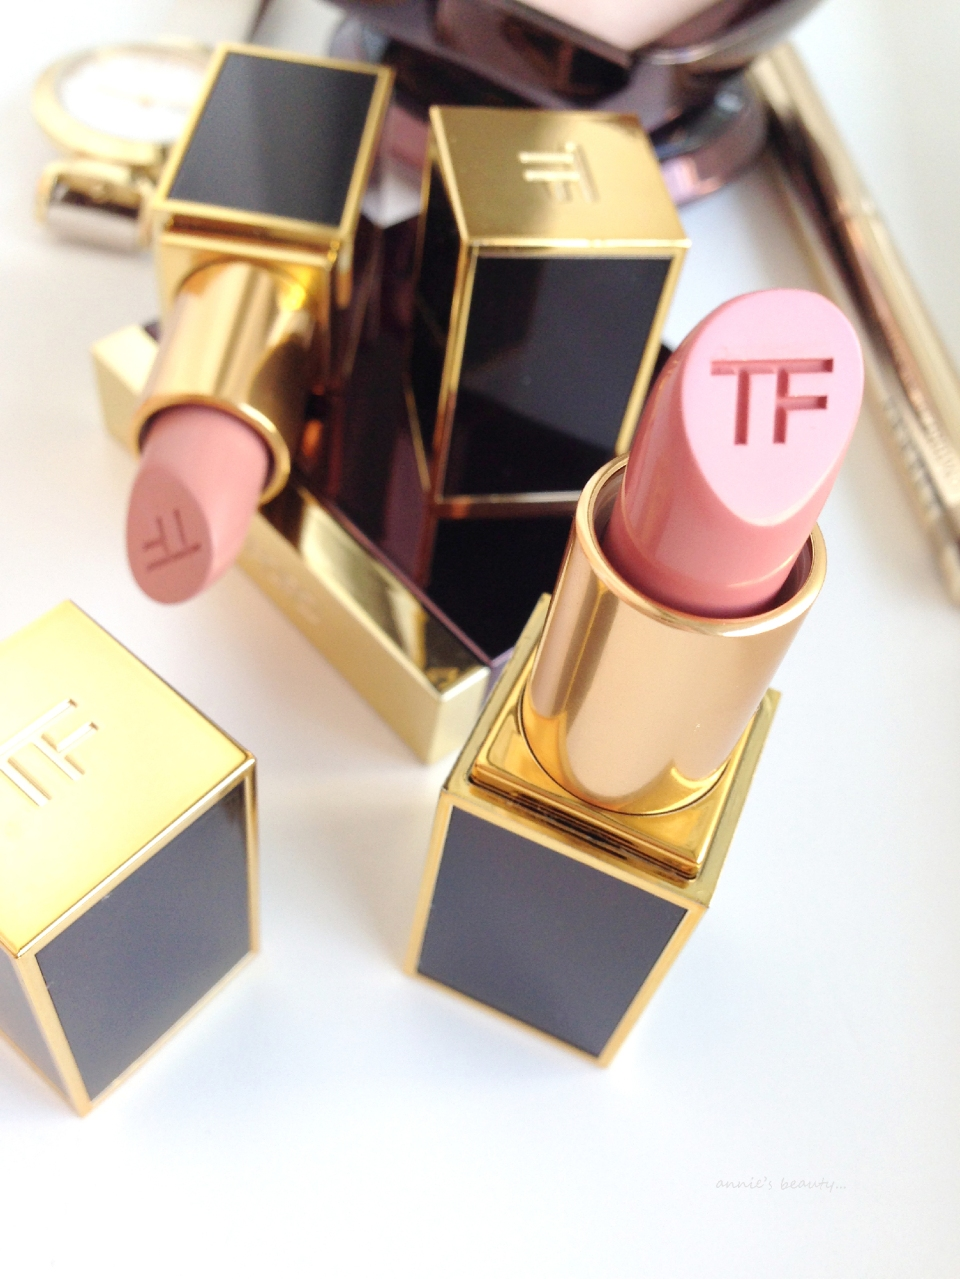 annie's beauty... TOM FORD makeup